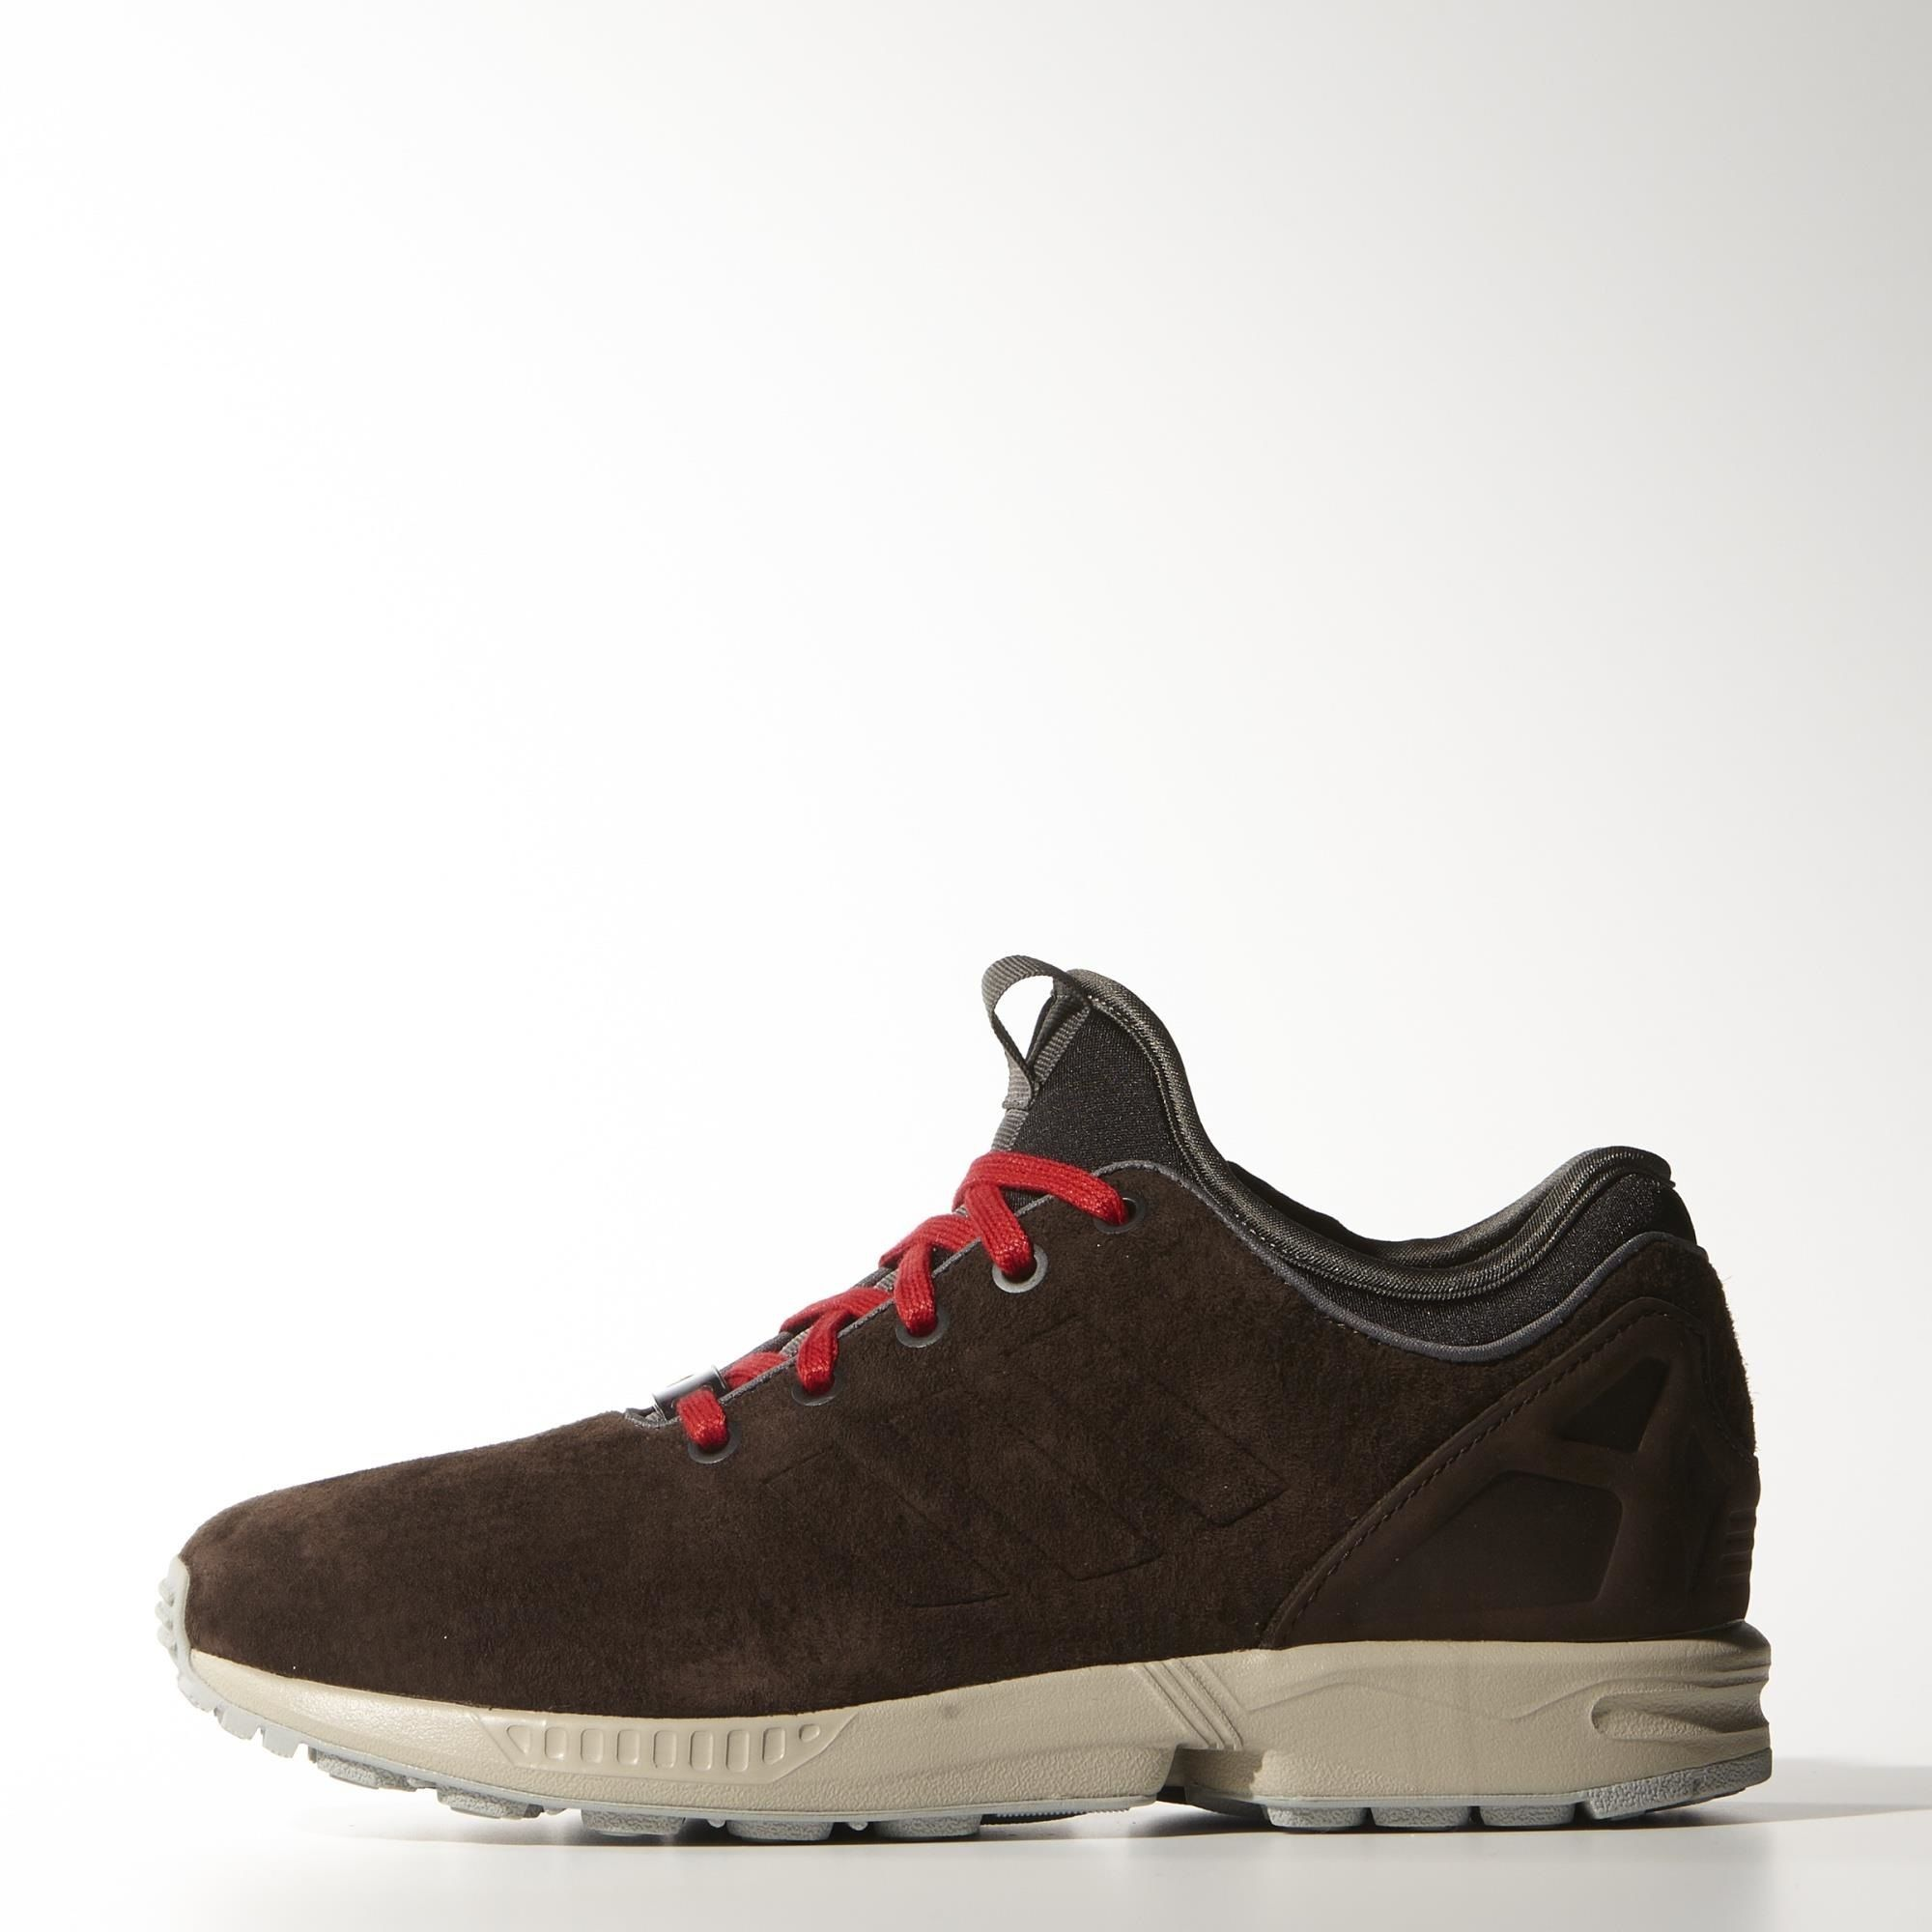 reputable site d630a 754d6 adidas ZX Flux NPS Shoes - Brown   adidas Ireland